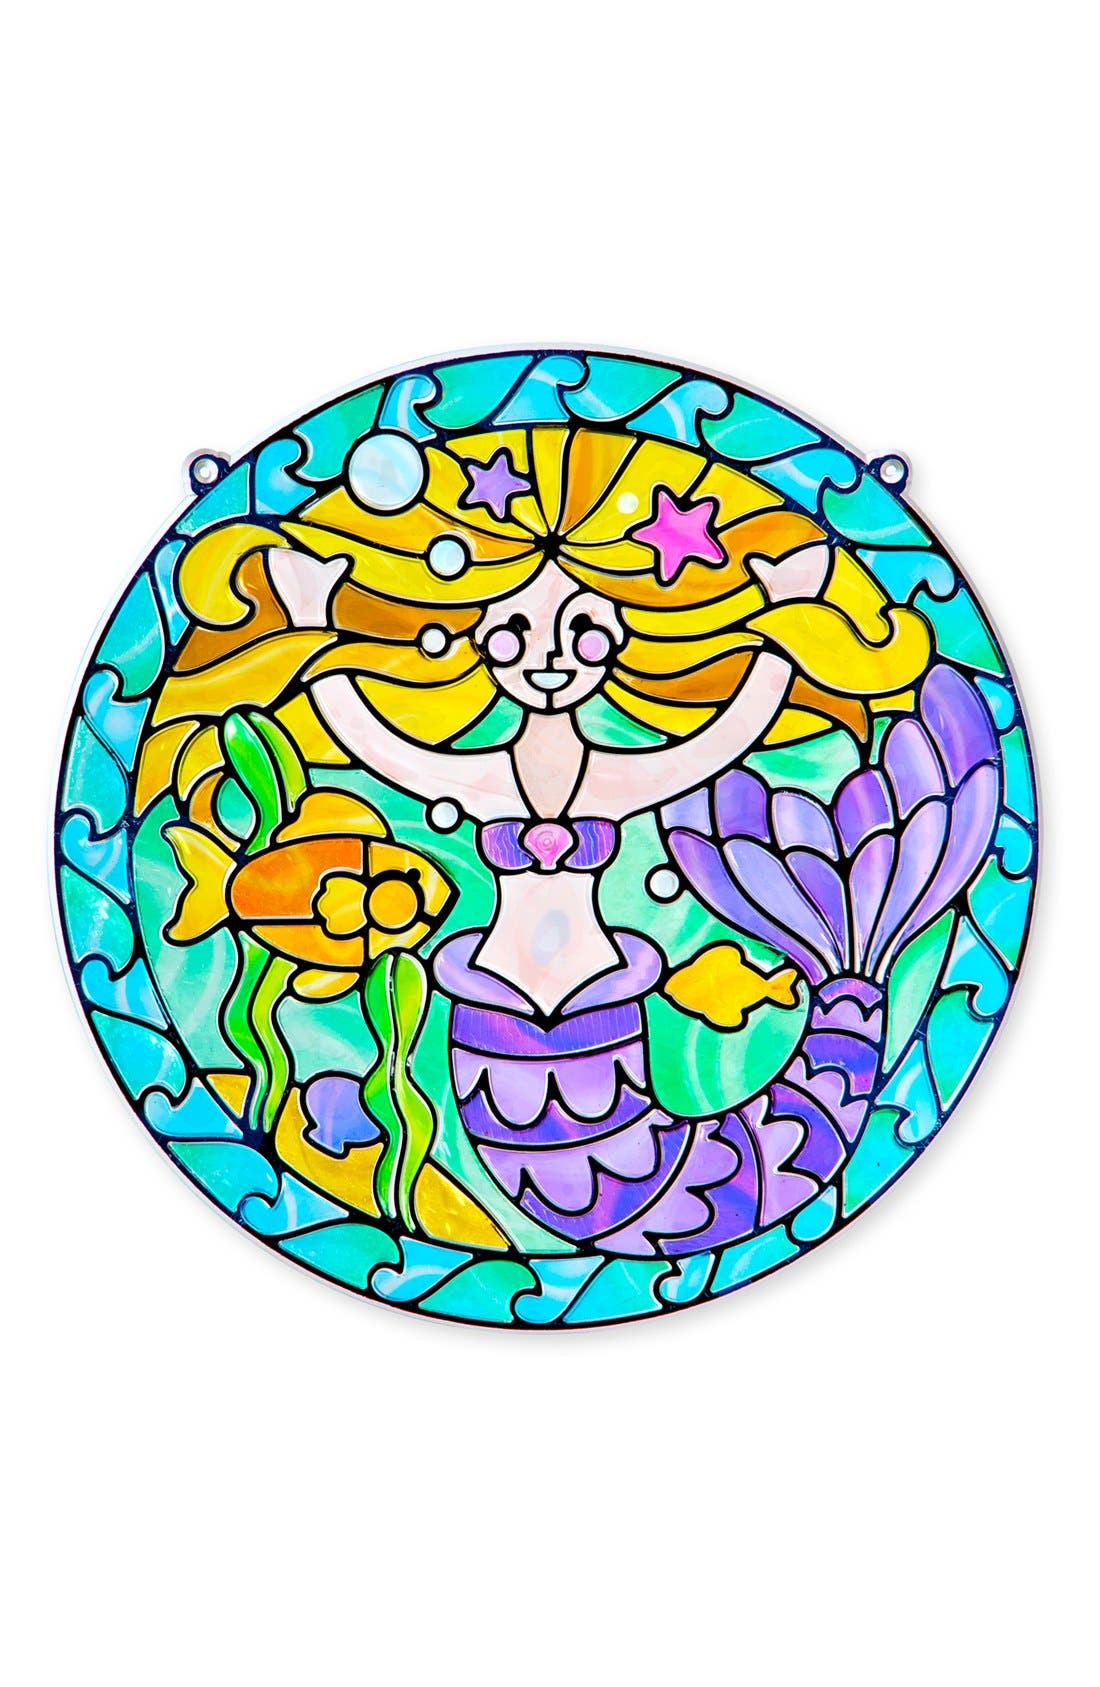 'Stained Glass Made Easy - Mermaid' Peel & Press Sticker Kit,                             Main thumbnail 1, color,                             400